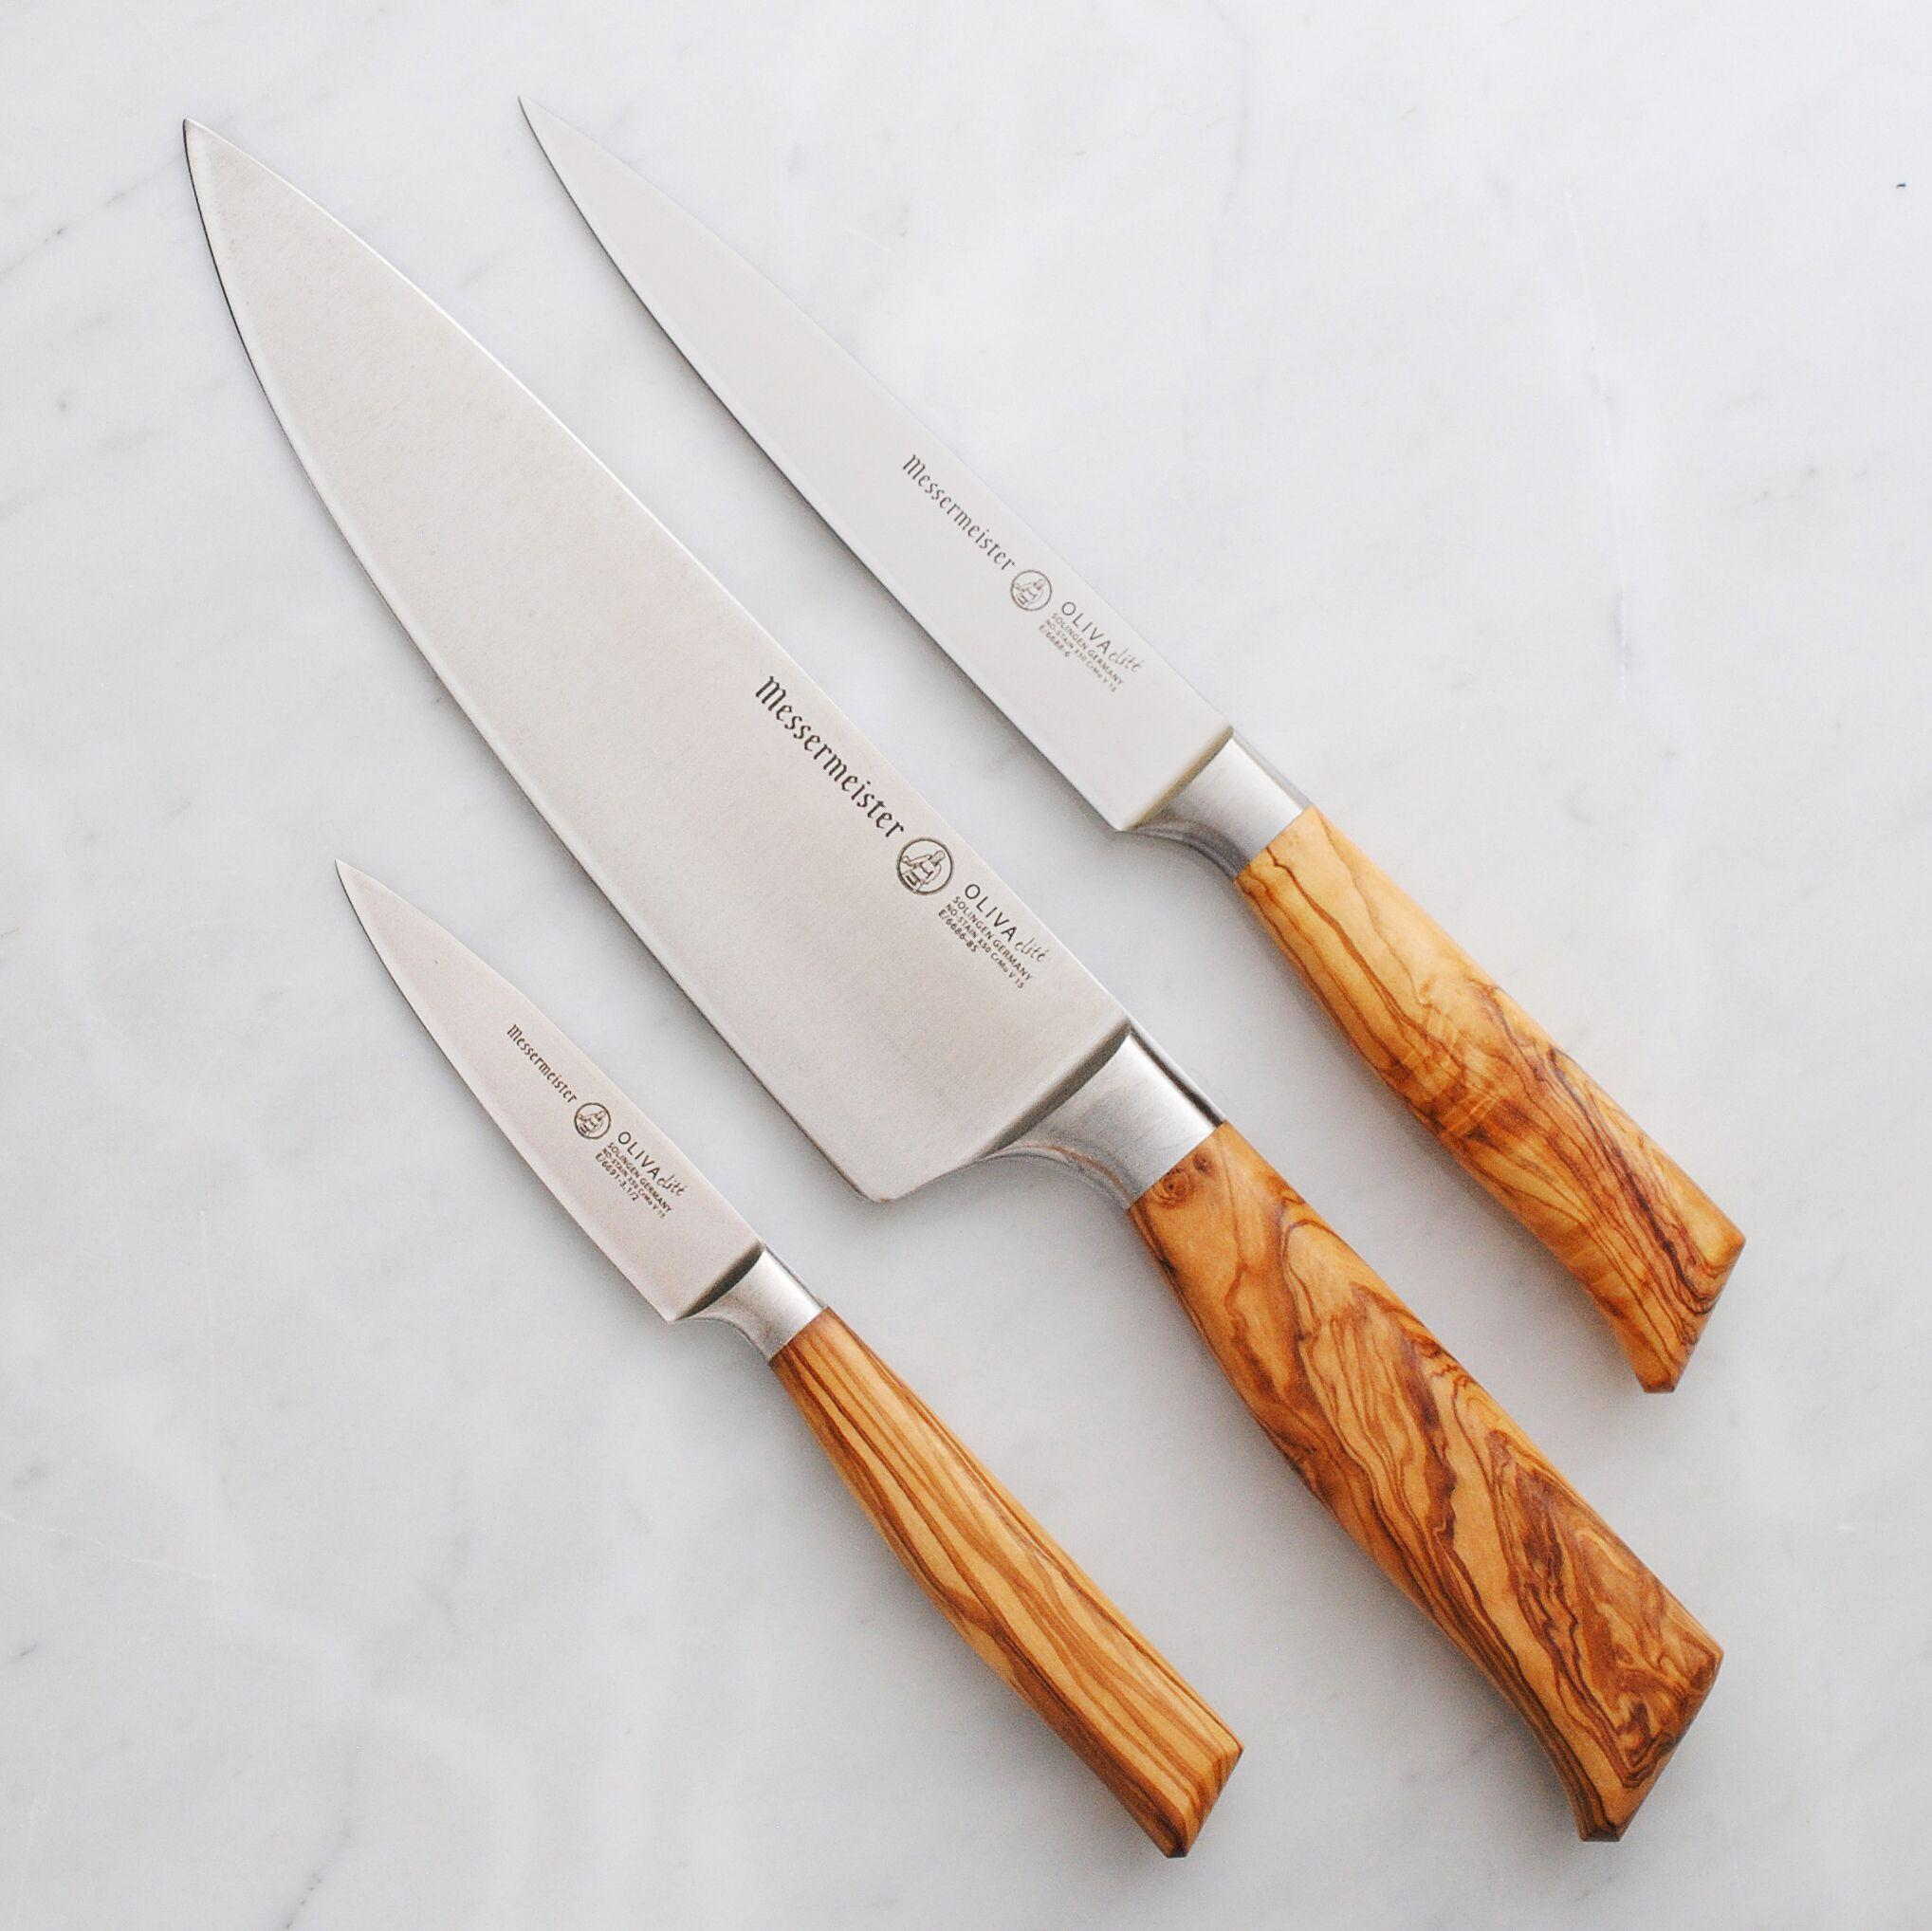 Messermeister Oliva Elite 3-Piece Starter Knife Set